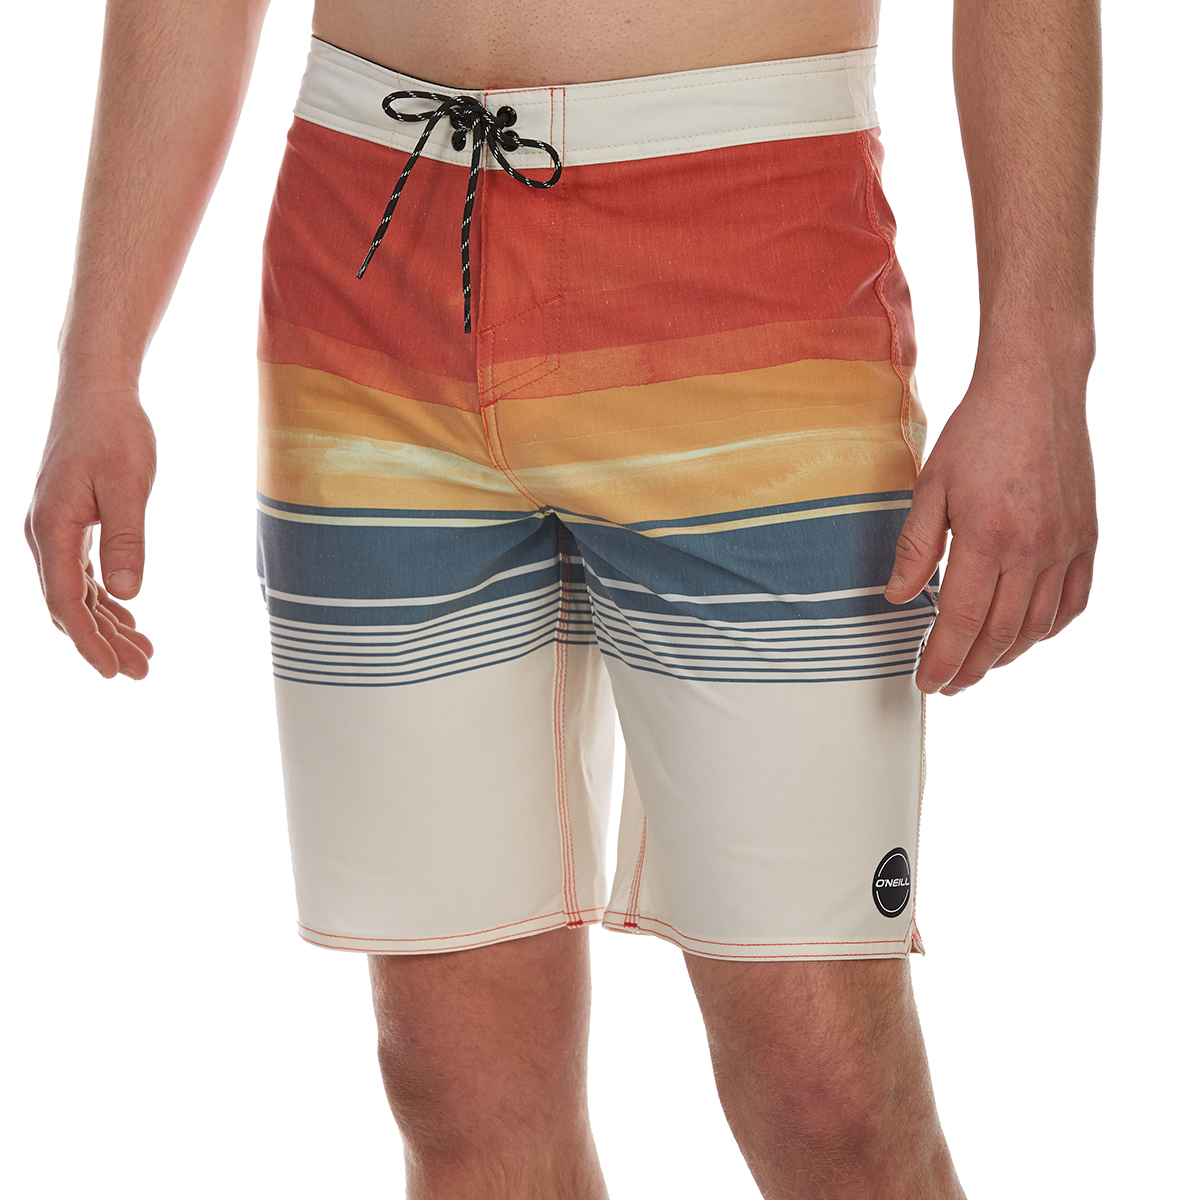 O'neill Guys' Informant Boardshorts - White, 32